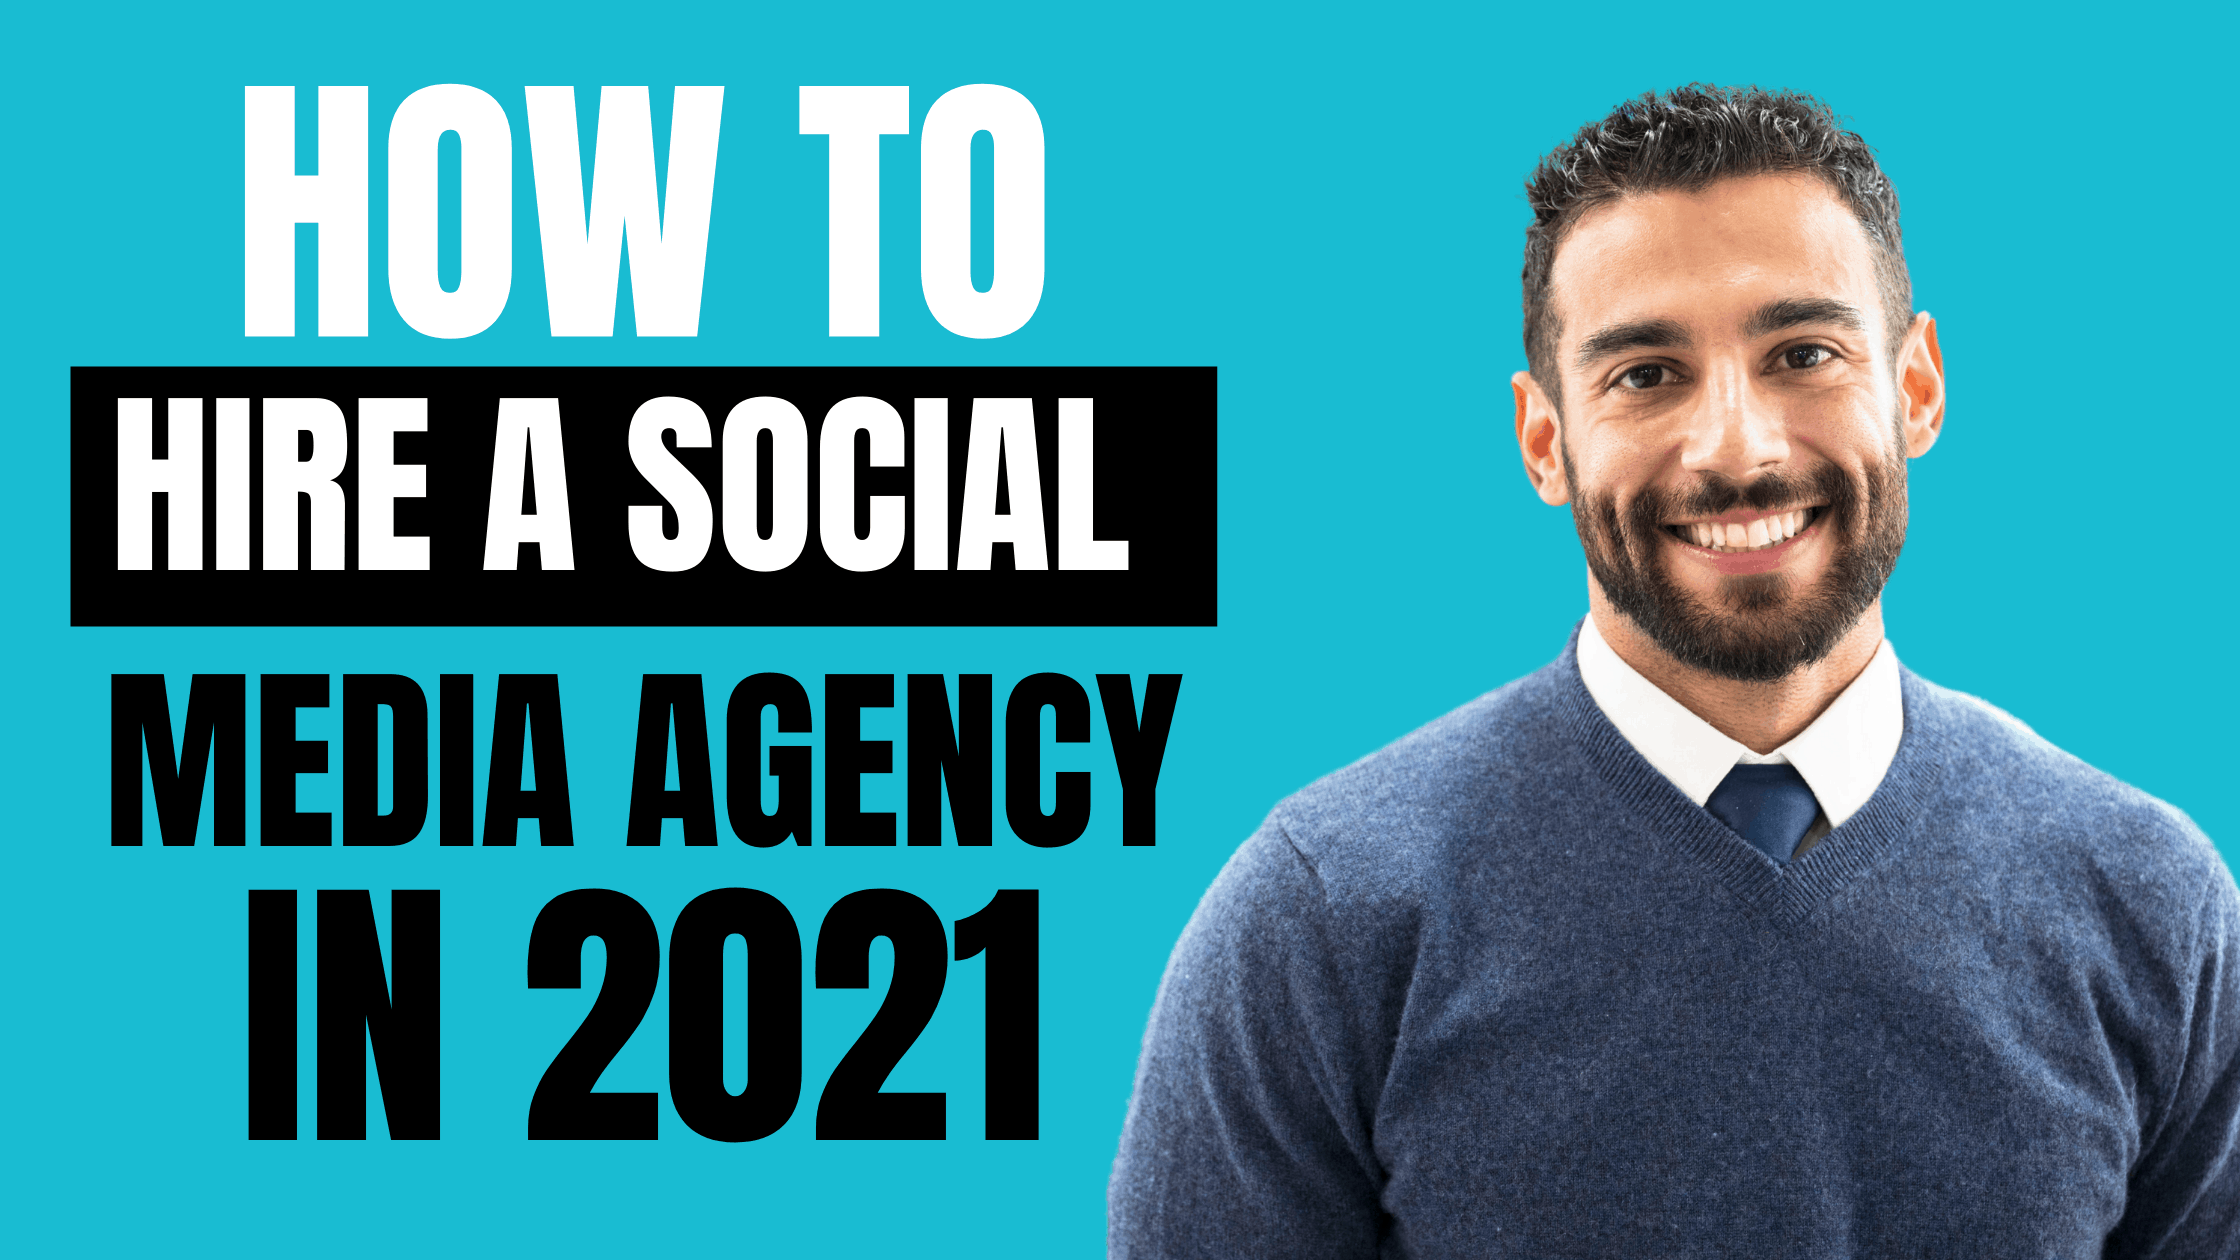 How To Hire A Social Media Agency To Grow Your Business